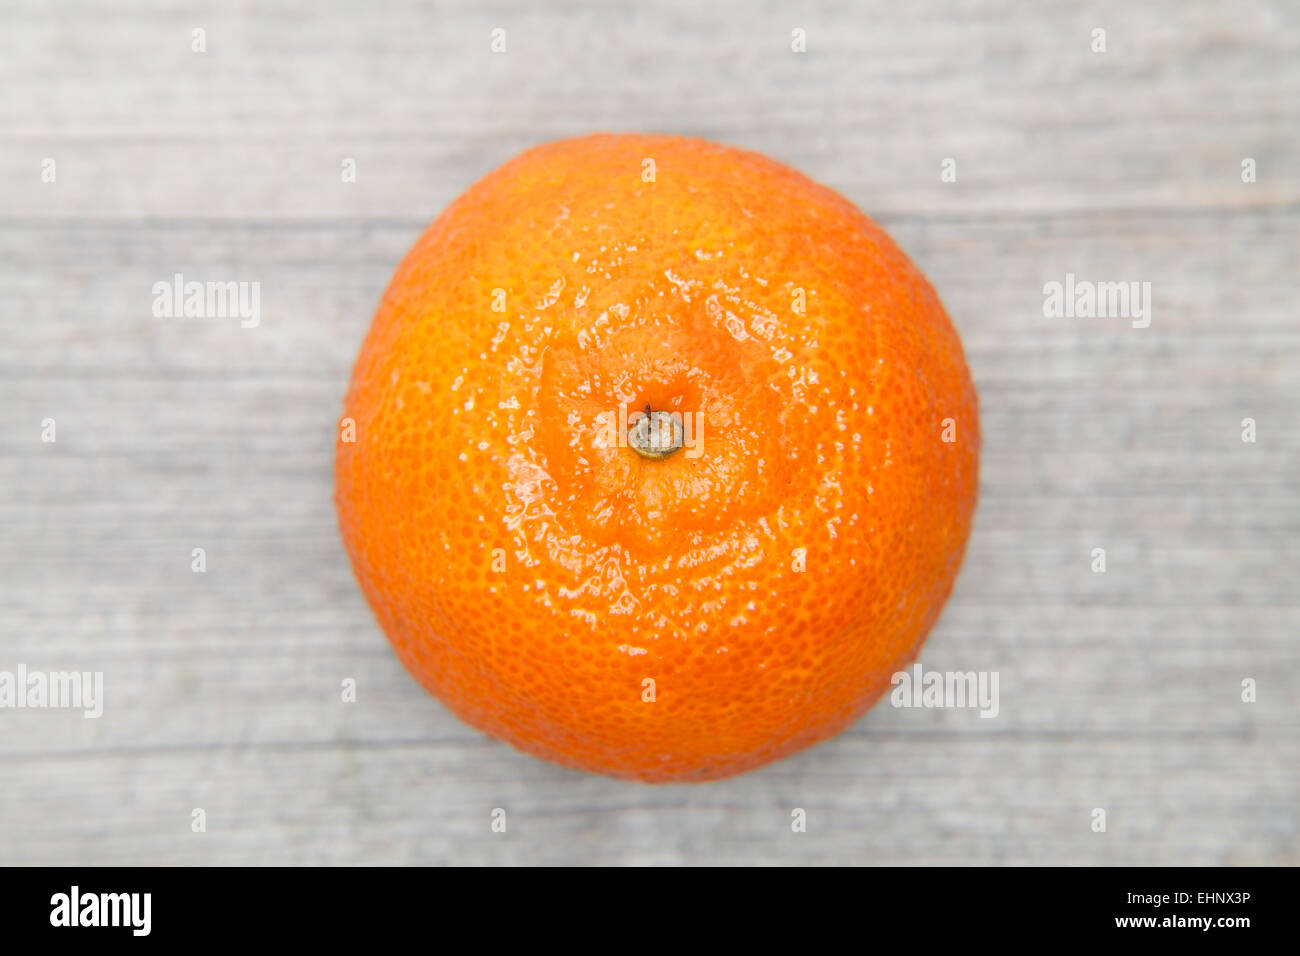 tangerine on a grey table - Stock Image